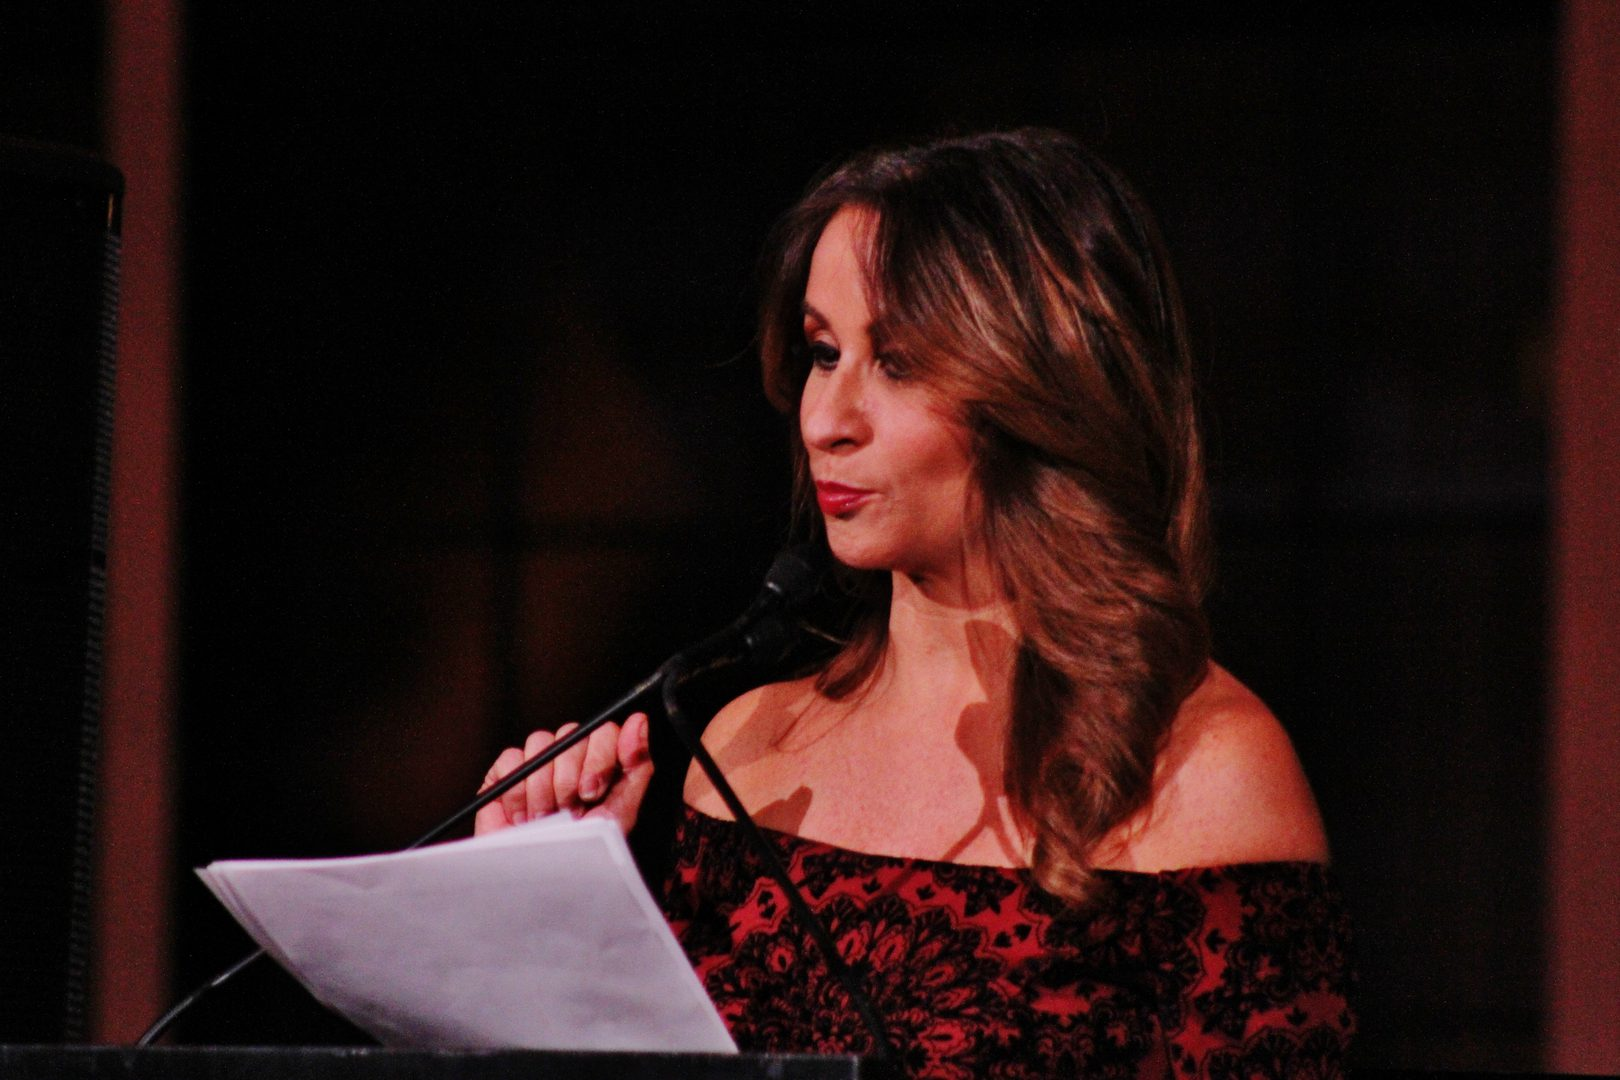 A woman talking on stage